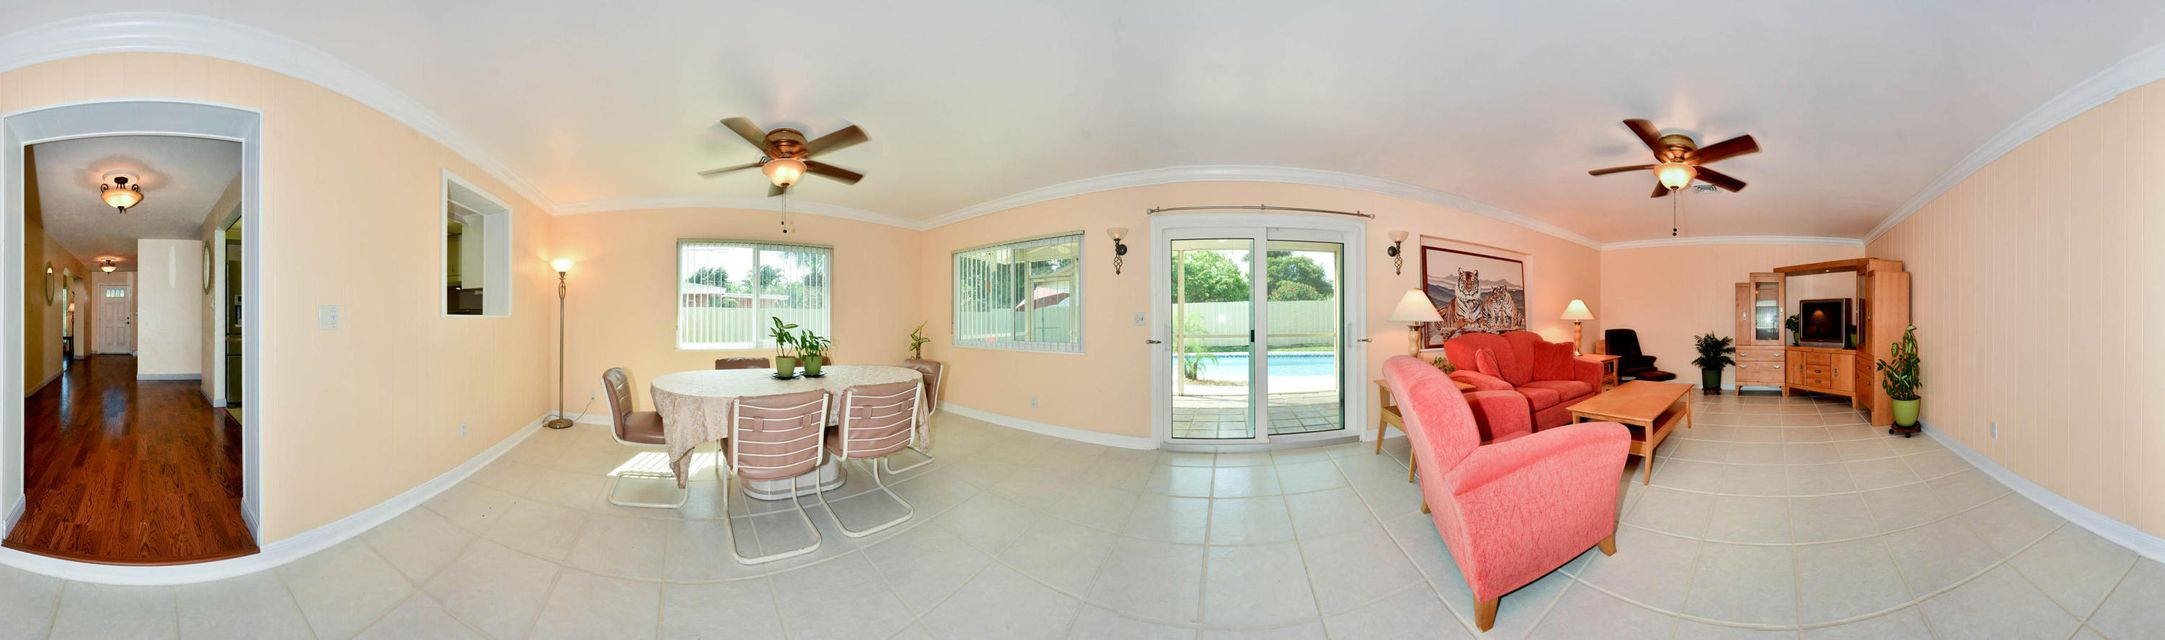 Additional photo for property listing at 2122 Northridge Road 2122 Northridge Road Delray Beach, Florida 33444 États-Unis